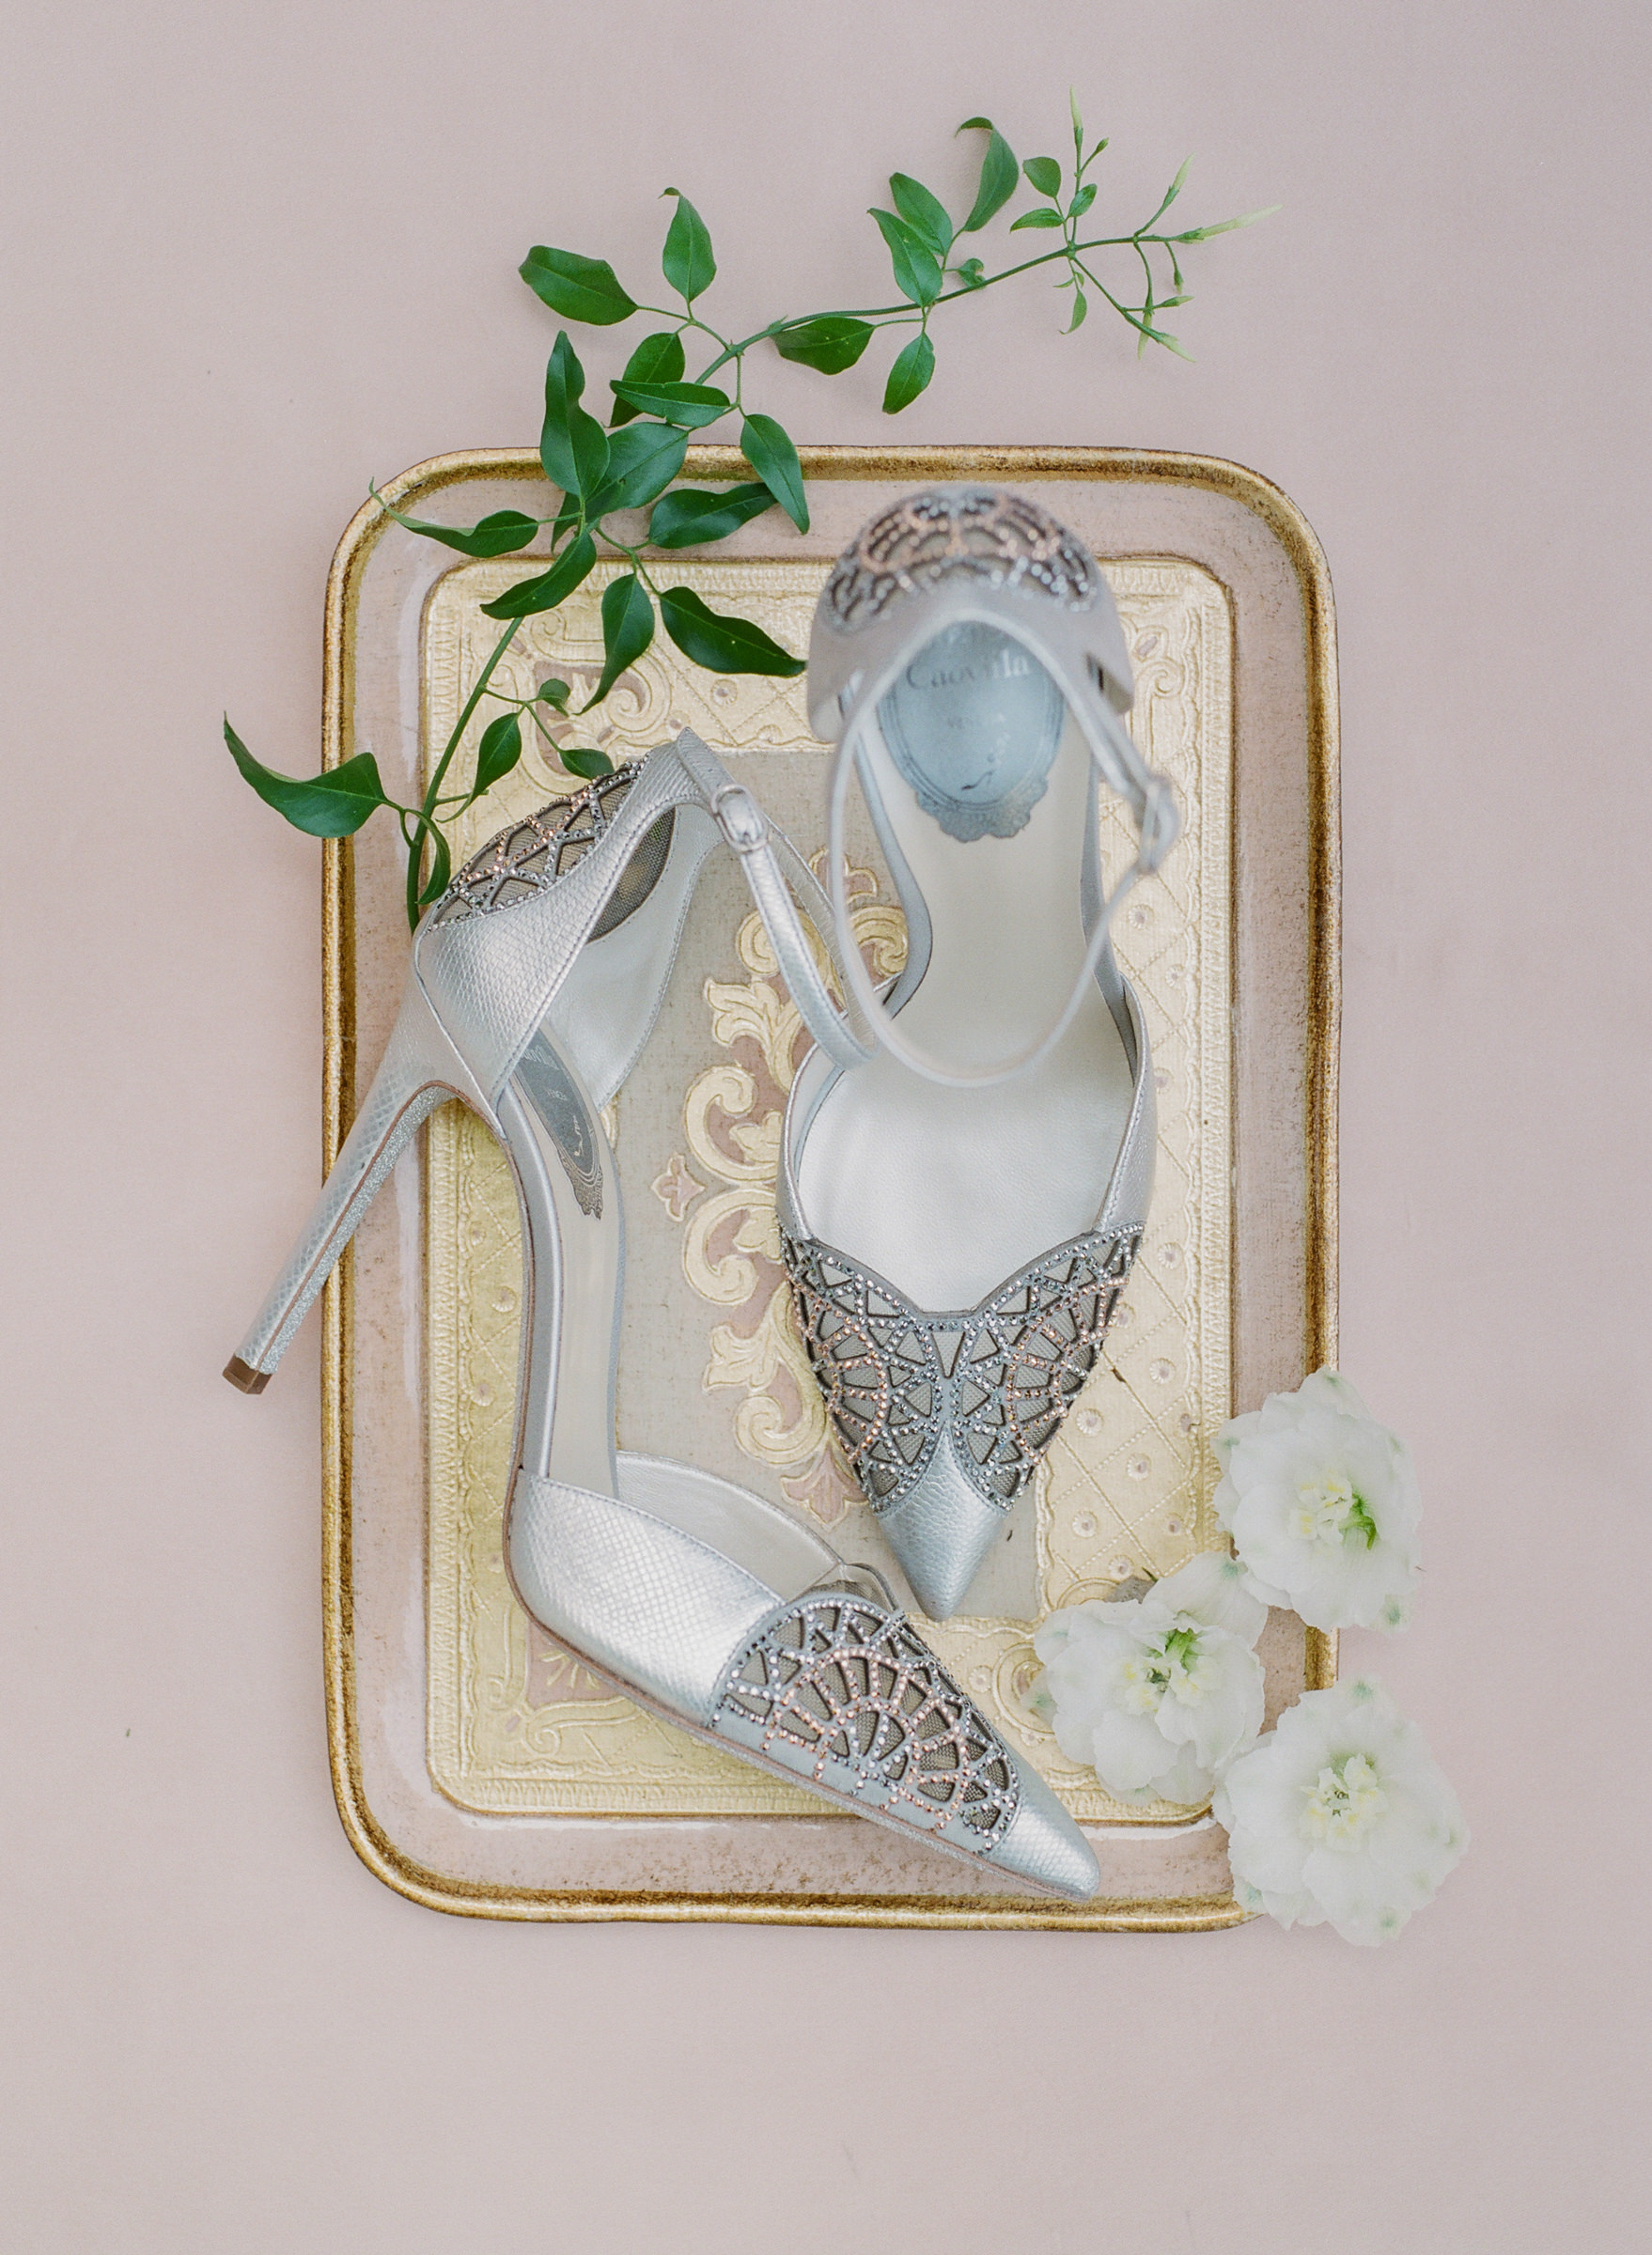 Caovila beaded silver high heel sandals -  photo by Corbin Gurkin